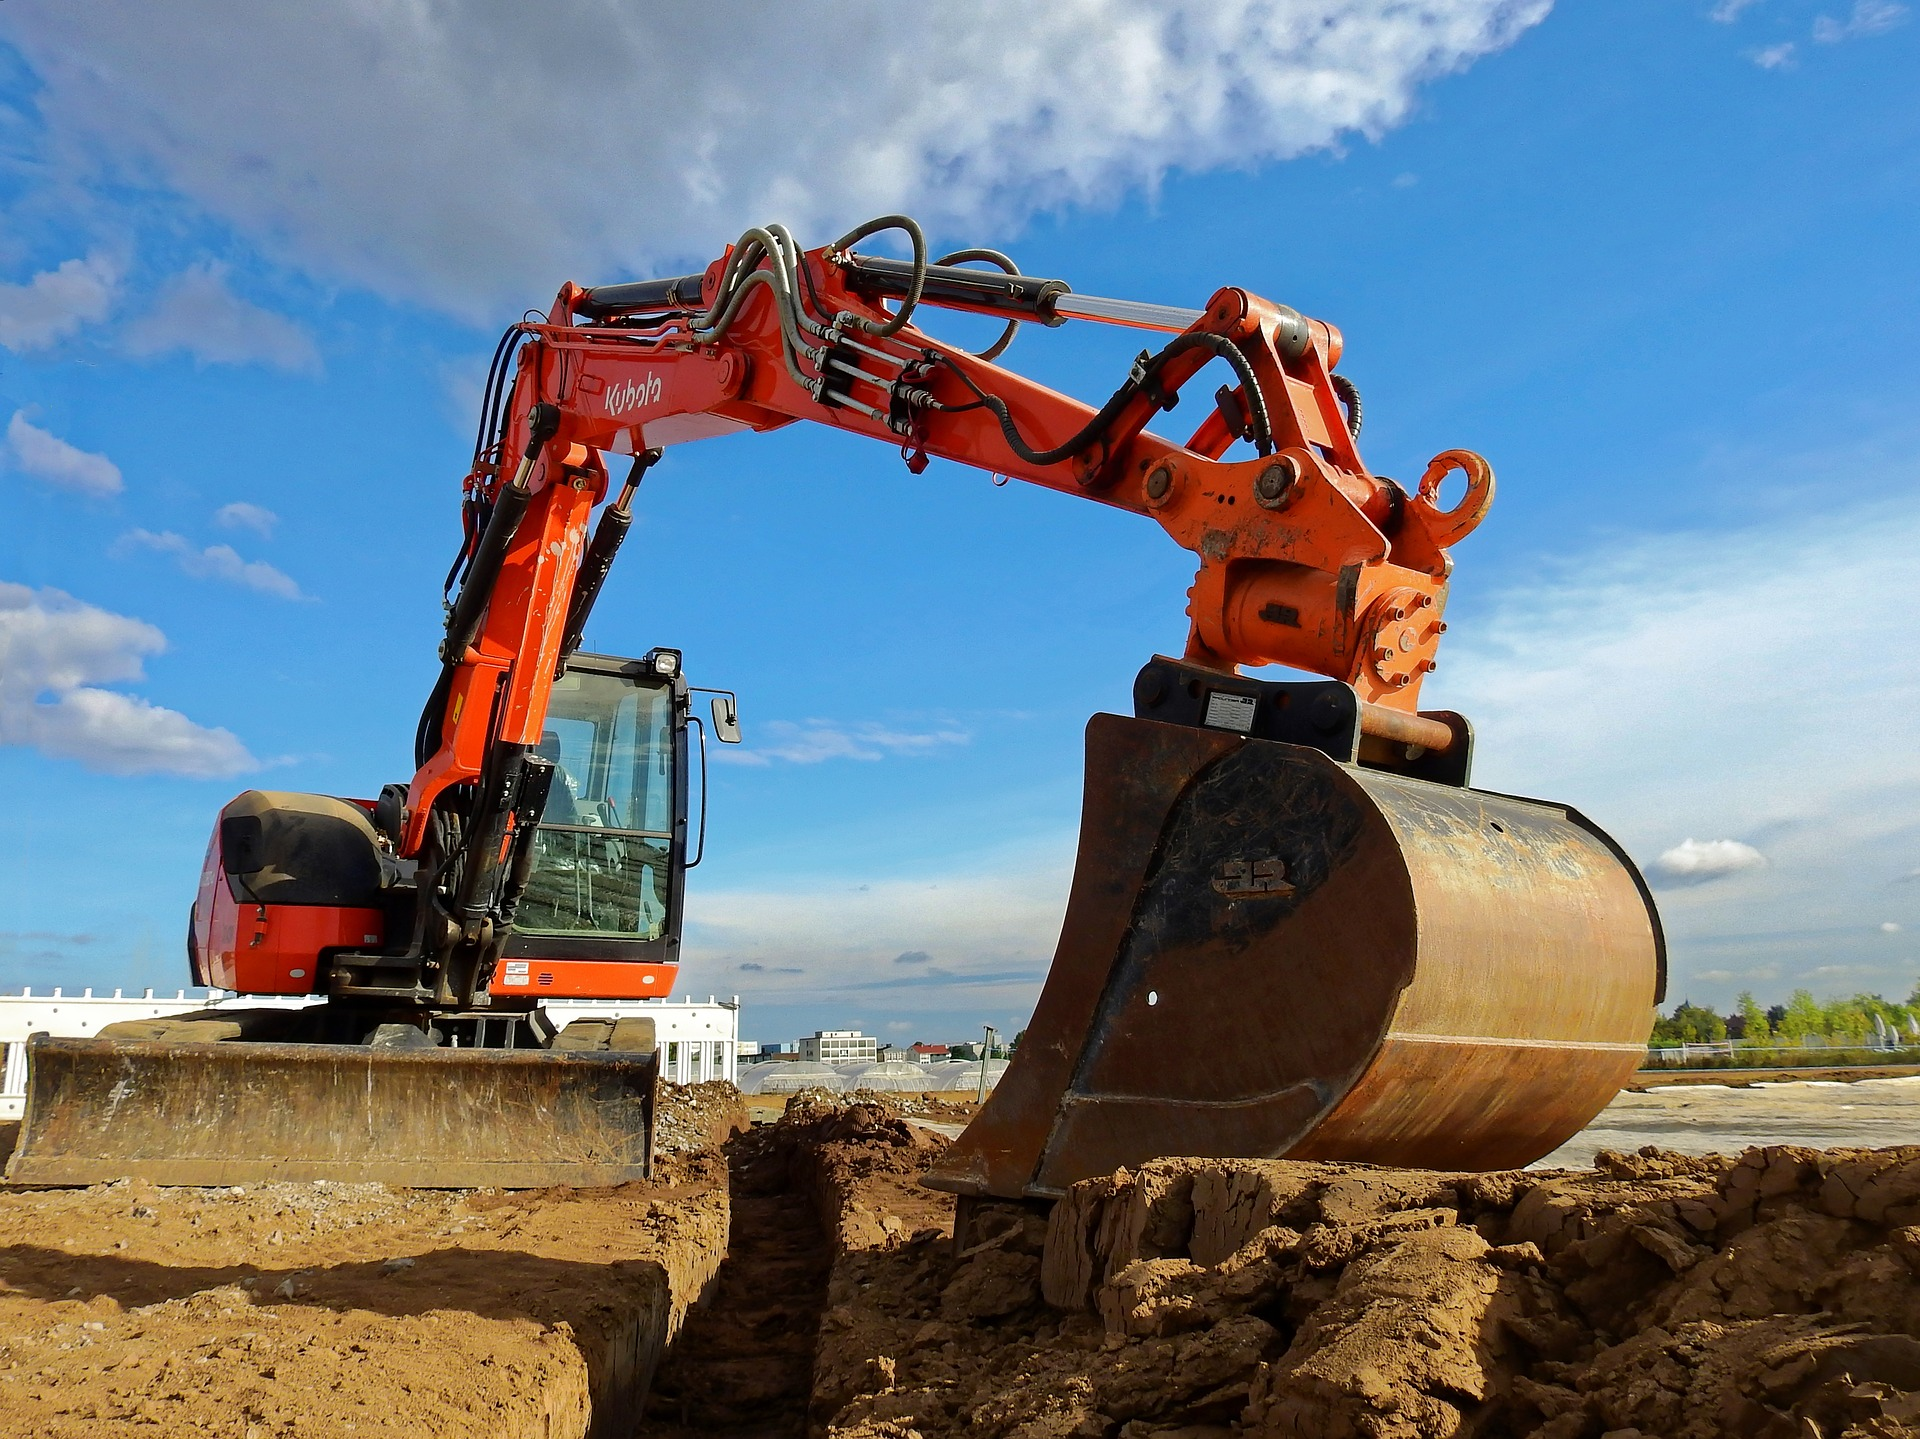 Excavator digging on a construction site.